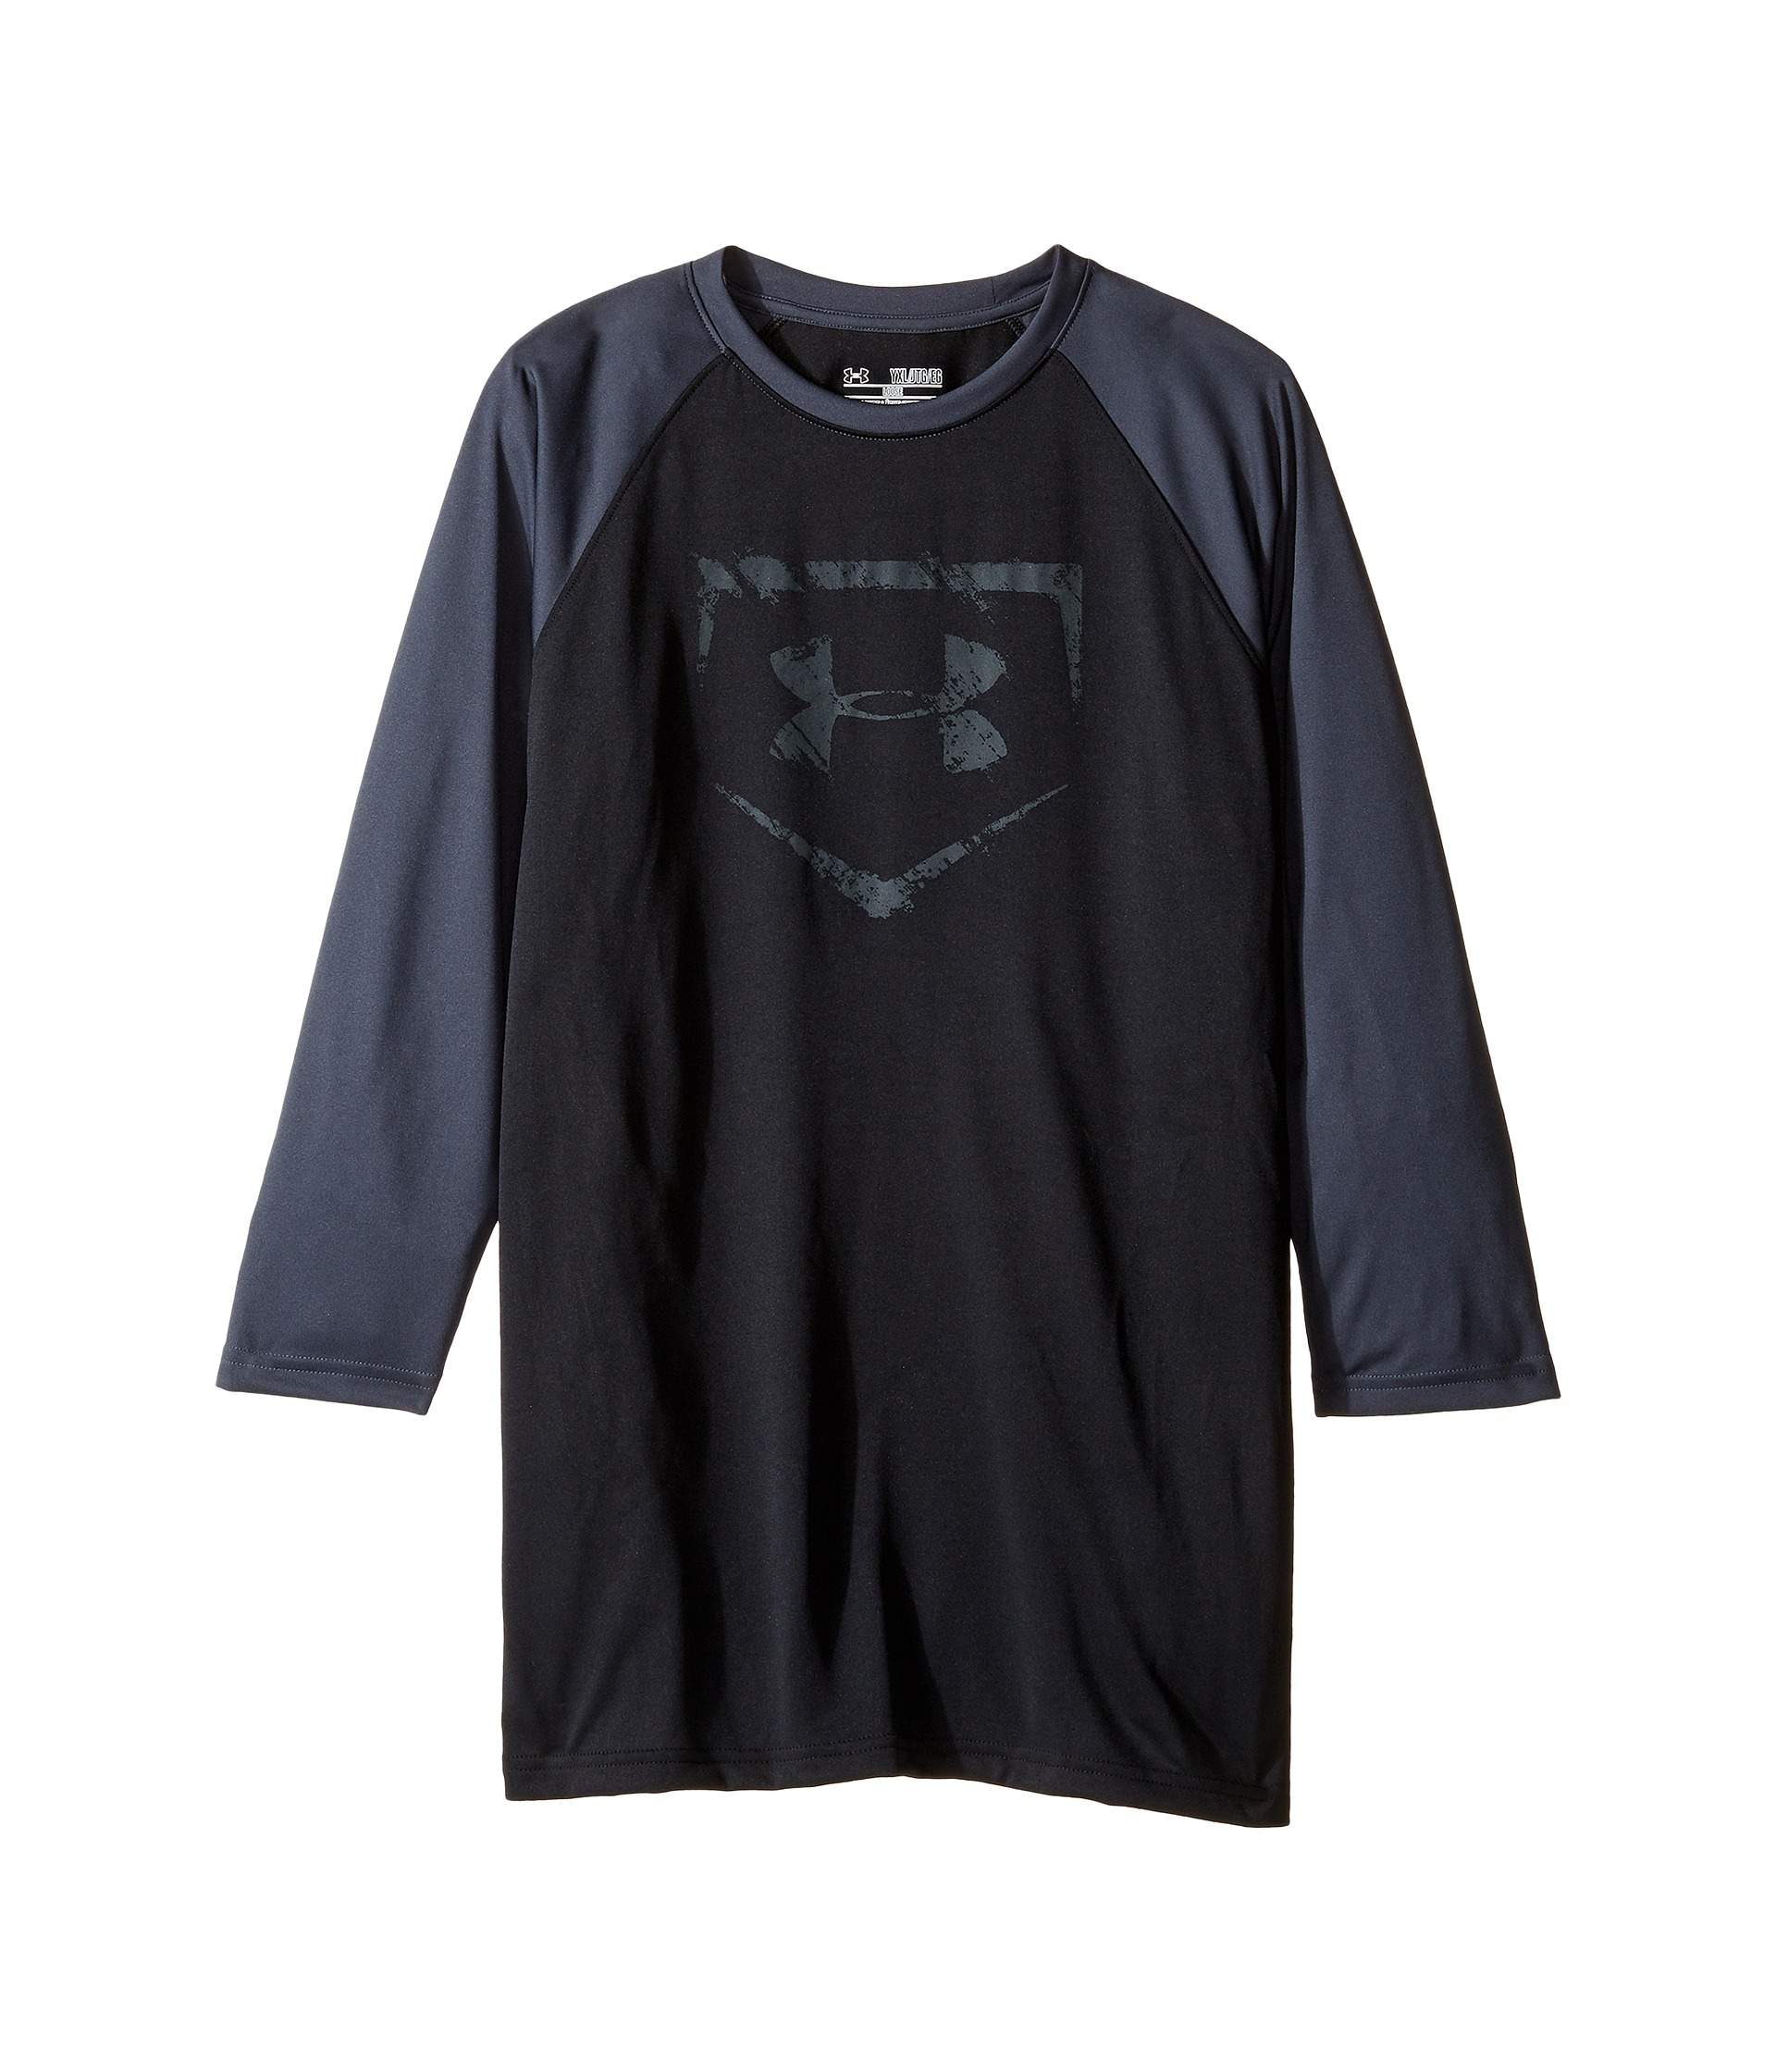 Under armour kids 3 4 sleeve baseball tee big kids for Under armour shirts for kids